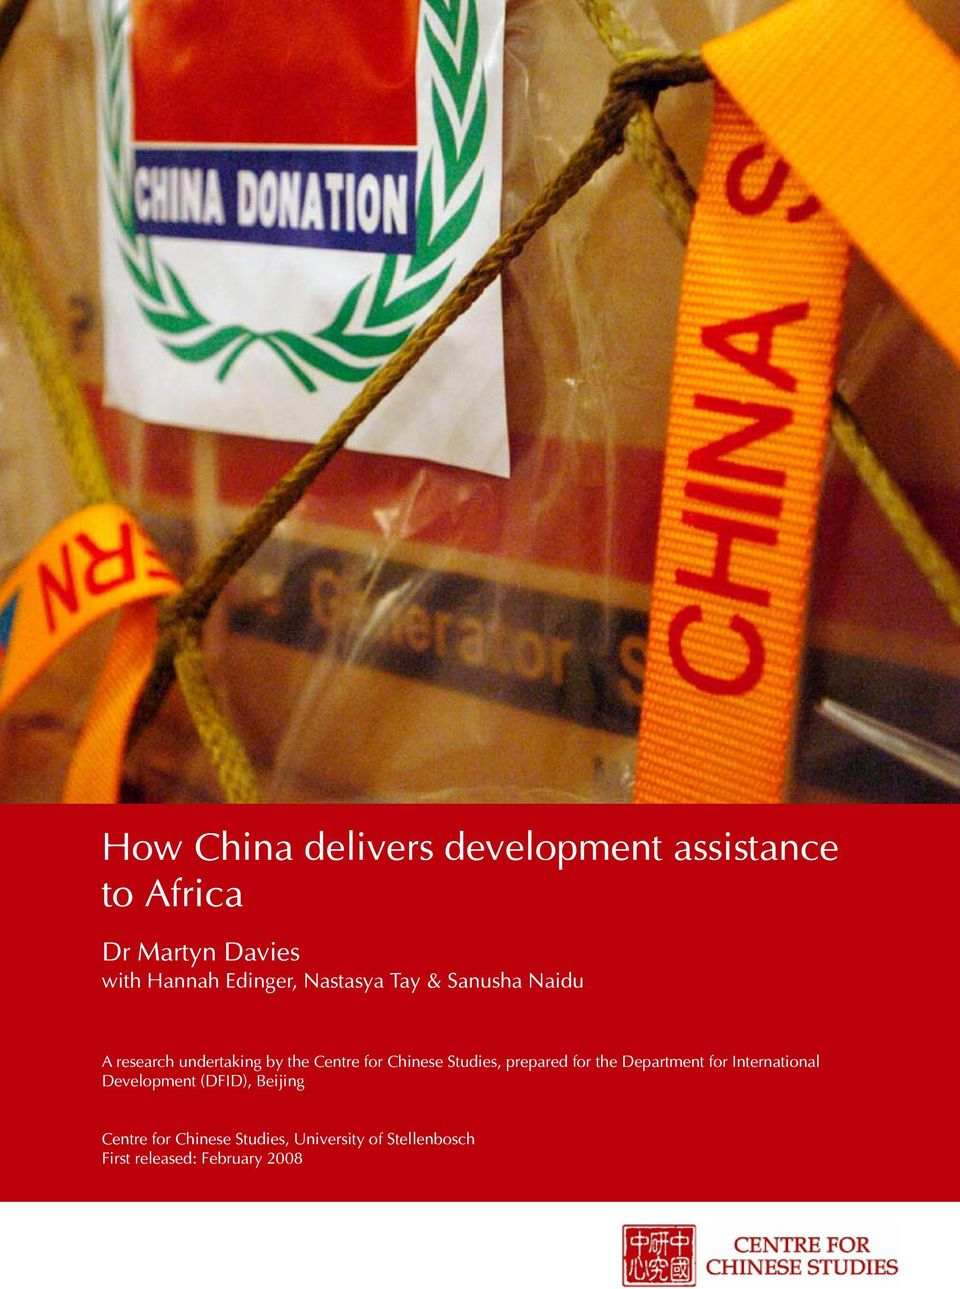 Chinese Studies, prepared for the Department for International Development (DFID),